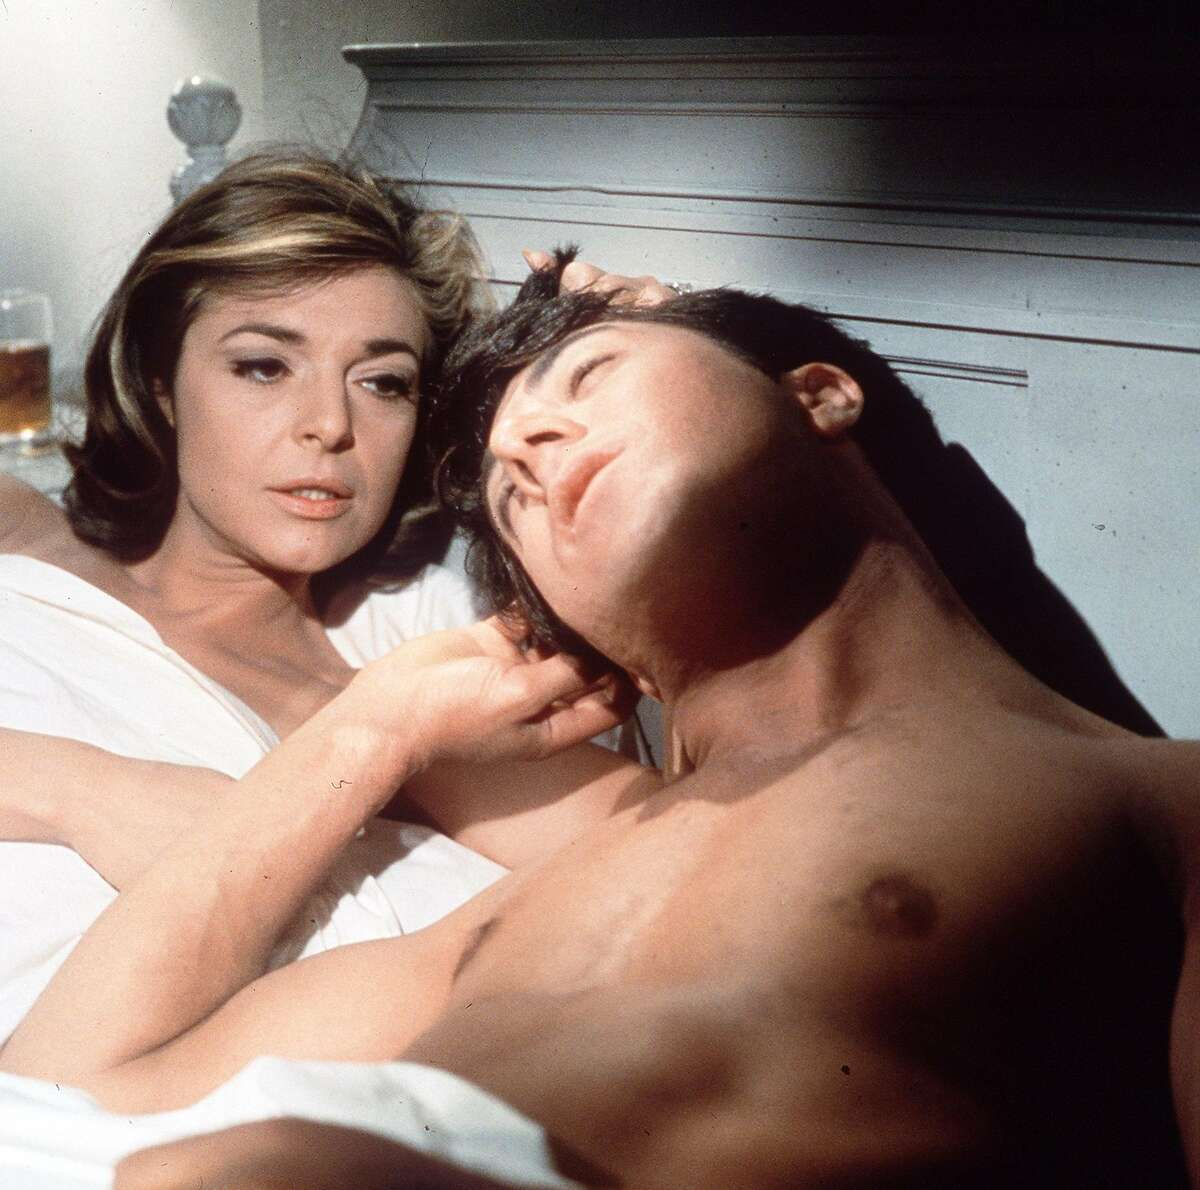 In this publicity still, actors Anne Bancroft, left, and Dustin Hoffman appear in a scene from the 1967 film